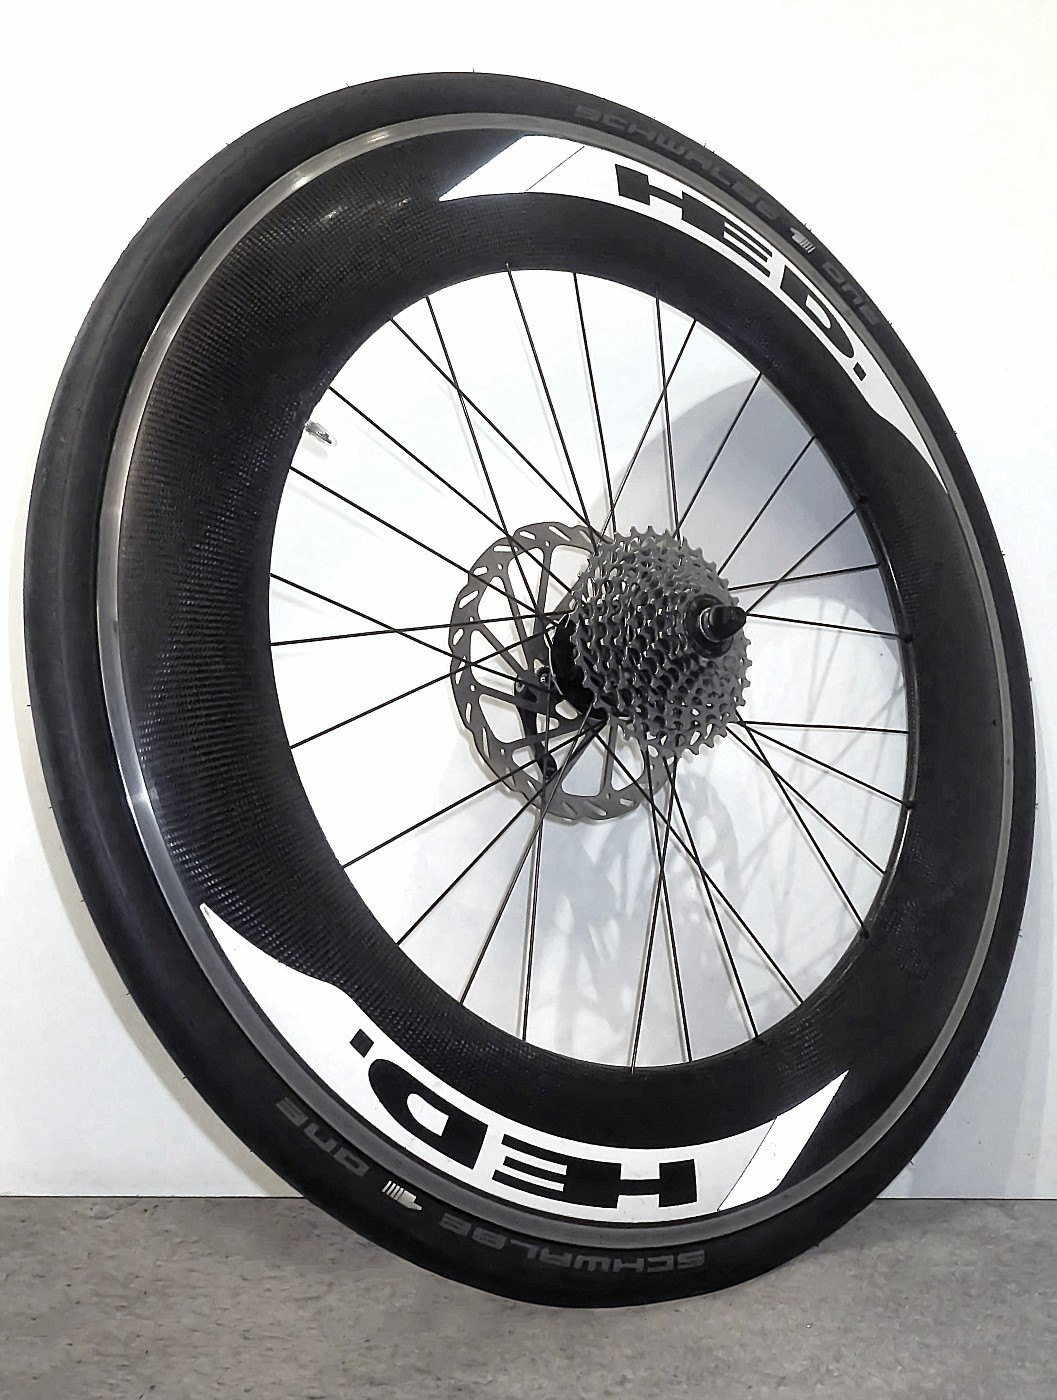 Rear wheel - ready re-spoked and centered